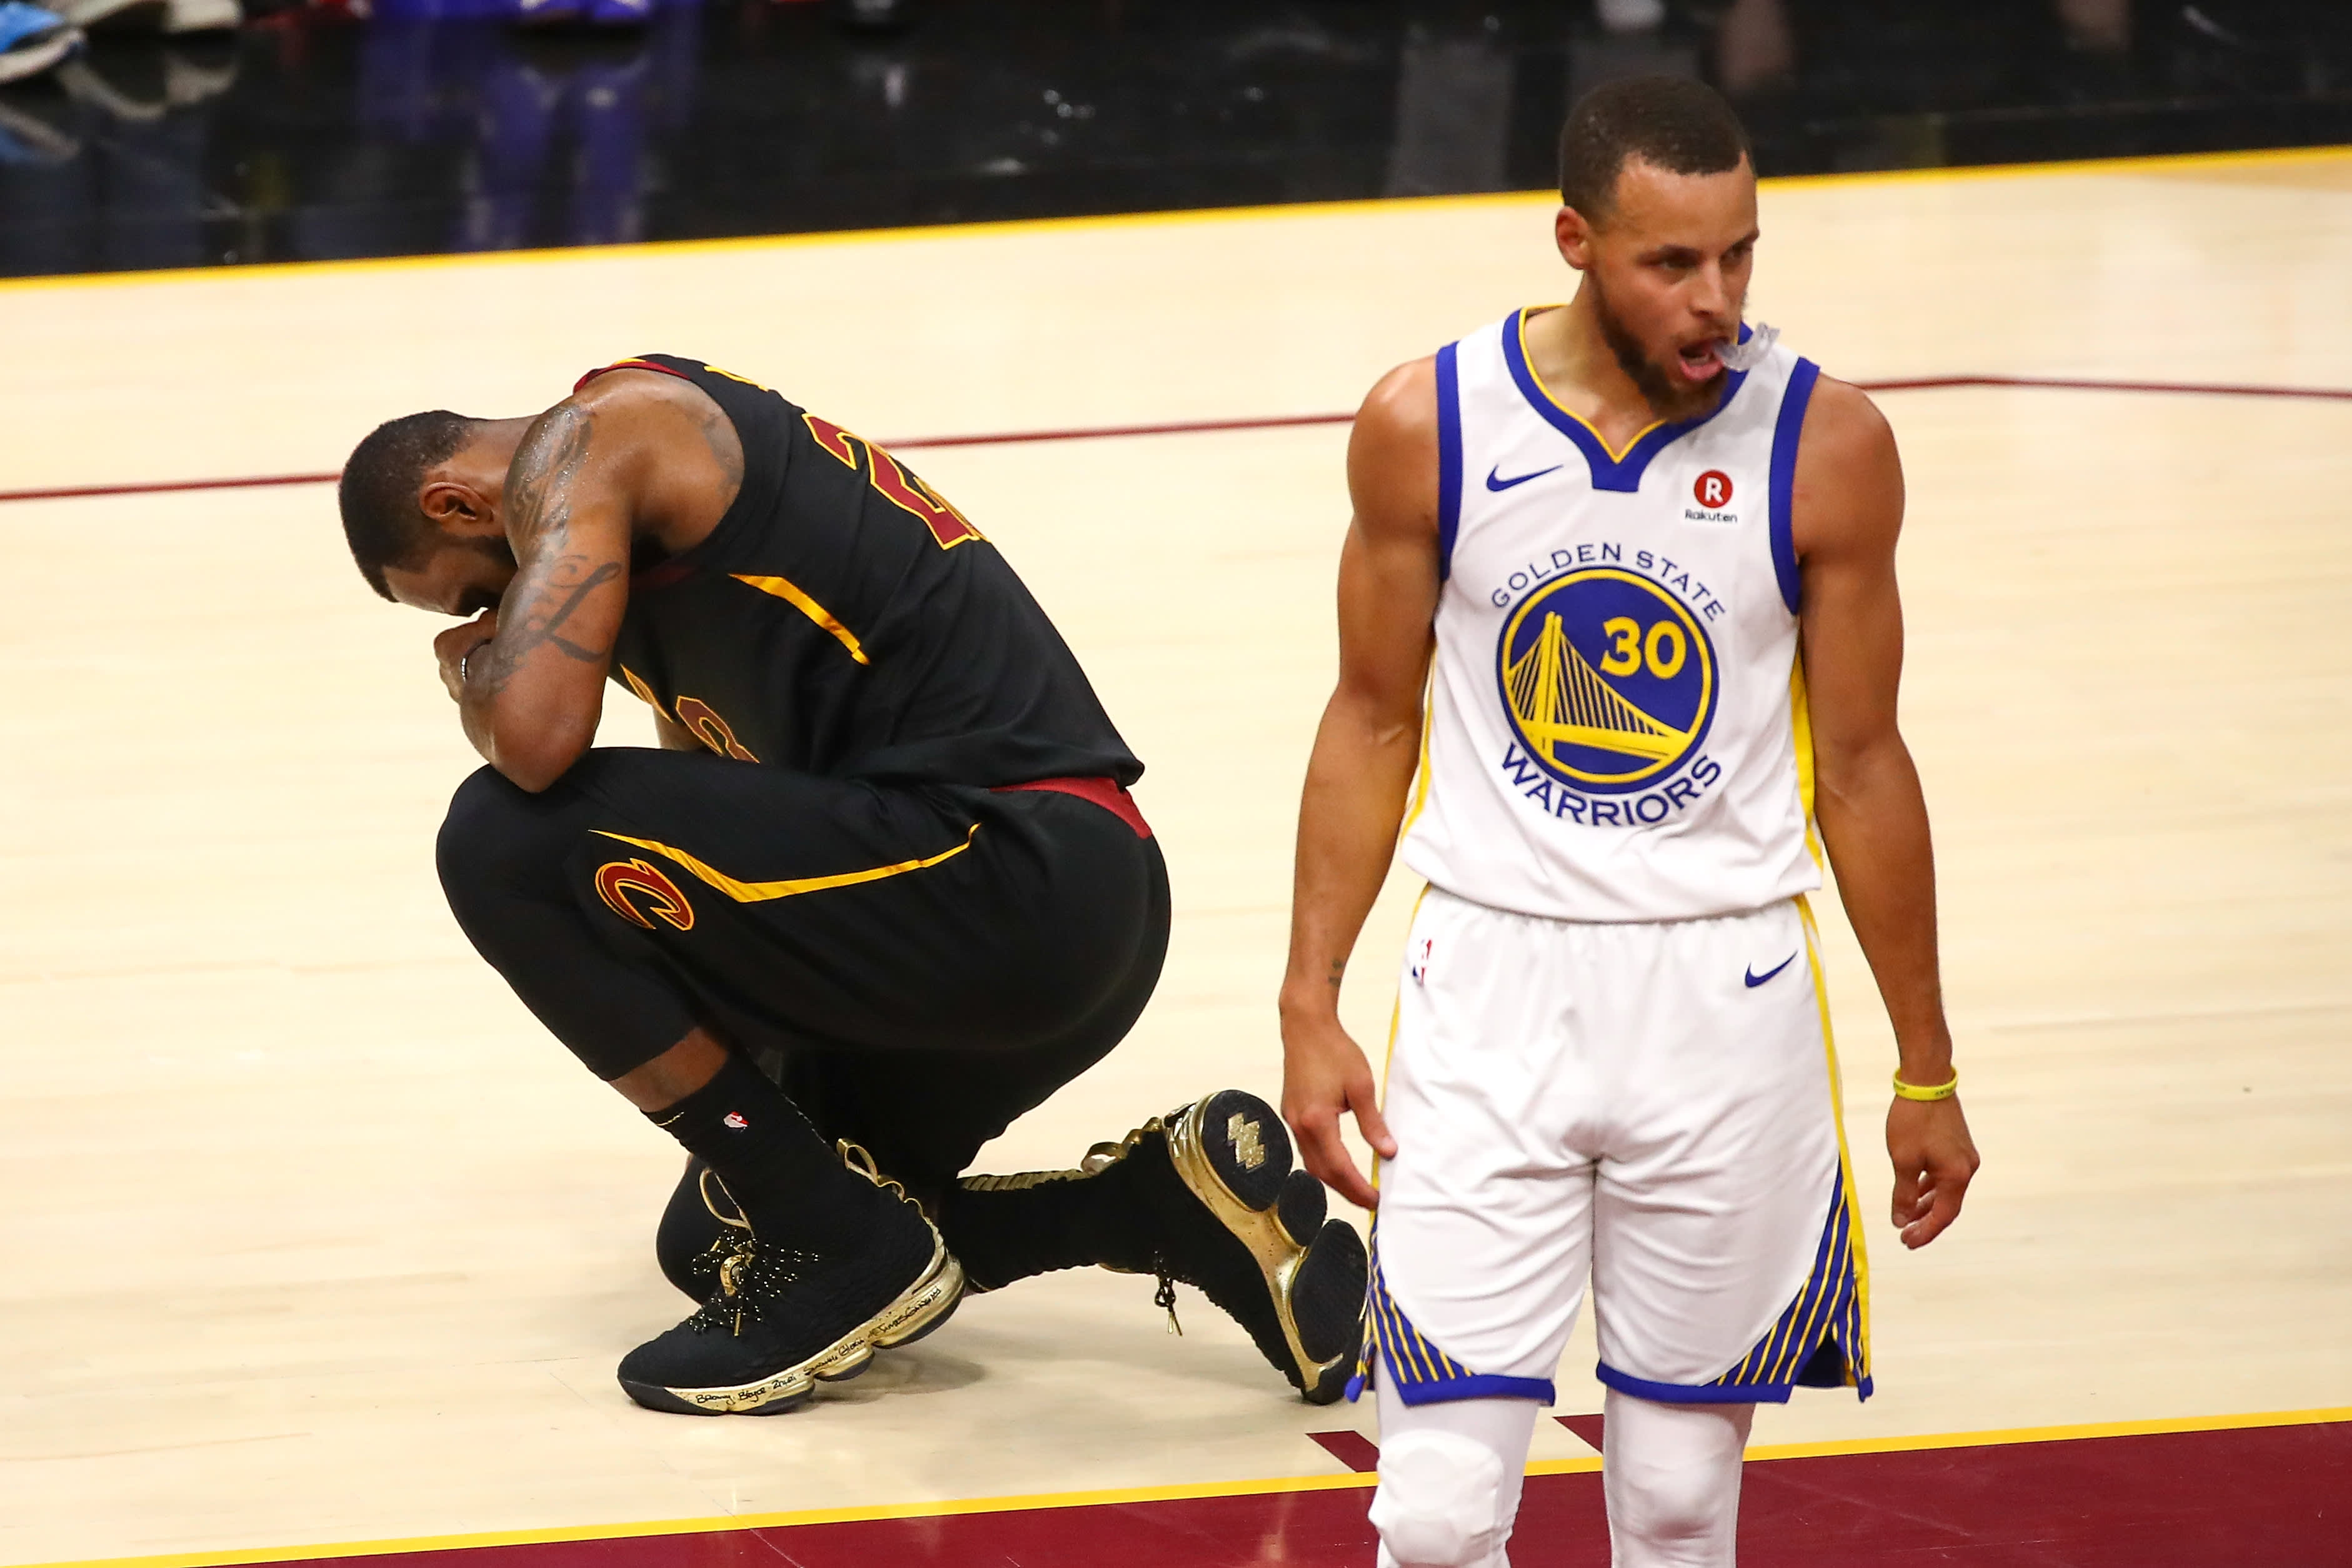 a563430b166 Warriors complete sweep of Cavaliers for third NBA title in four years